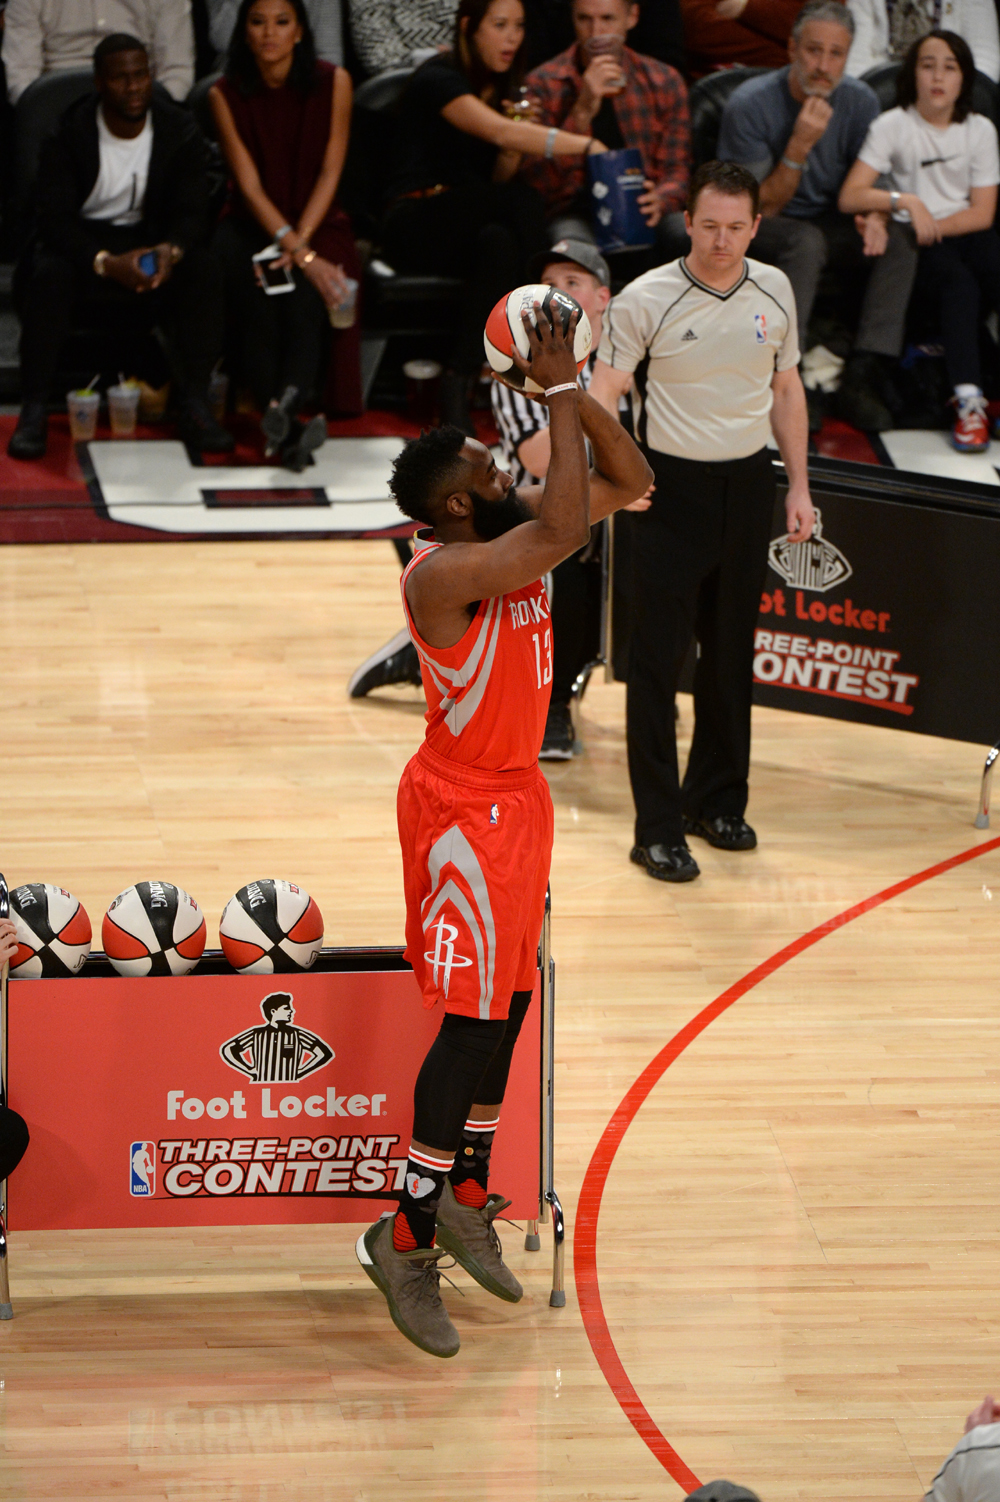 TORONTO, CANADA - FEBRUARY 13: James Harden #13 of the Houston Rockets shoots during the Foot Locker Three-Point Contest as part of 2016 NBA All-Star Weekend on February 13, 2016 at the Air Canada Centre in Toronto, Ontario, Canada. NOTE TO USER: User expressly acknowledges and agrees that, by downloading and or using this Photograph, user is consenting to the terms and conditions of the Getty Images License Agreement. Mandatory Copyright Notice: Copyright 2016 NBAE (Photo by Garrett Ellwood/NBAE via Getty Images)